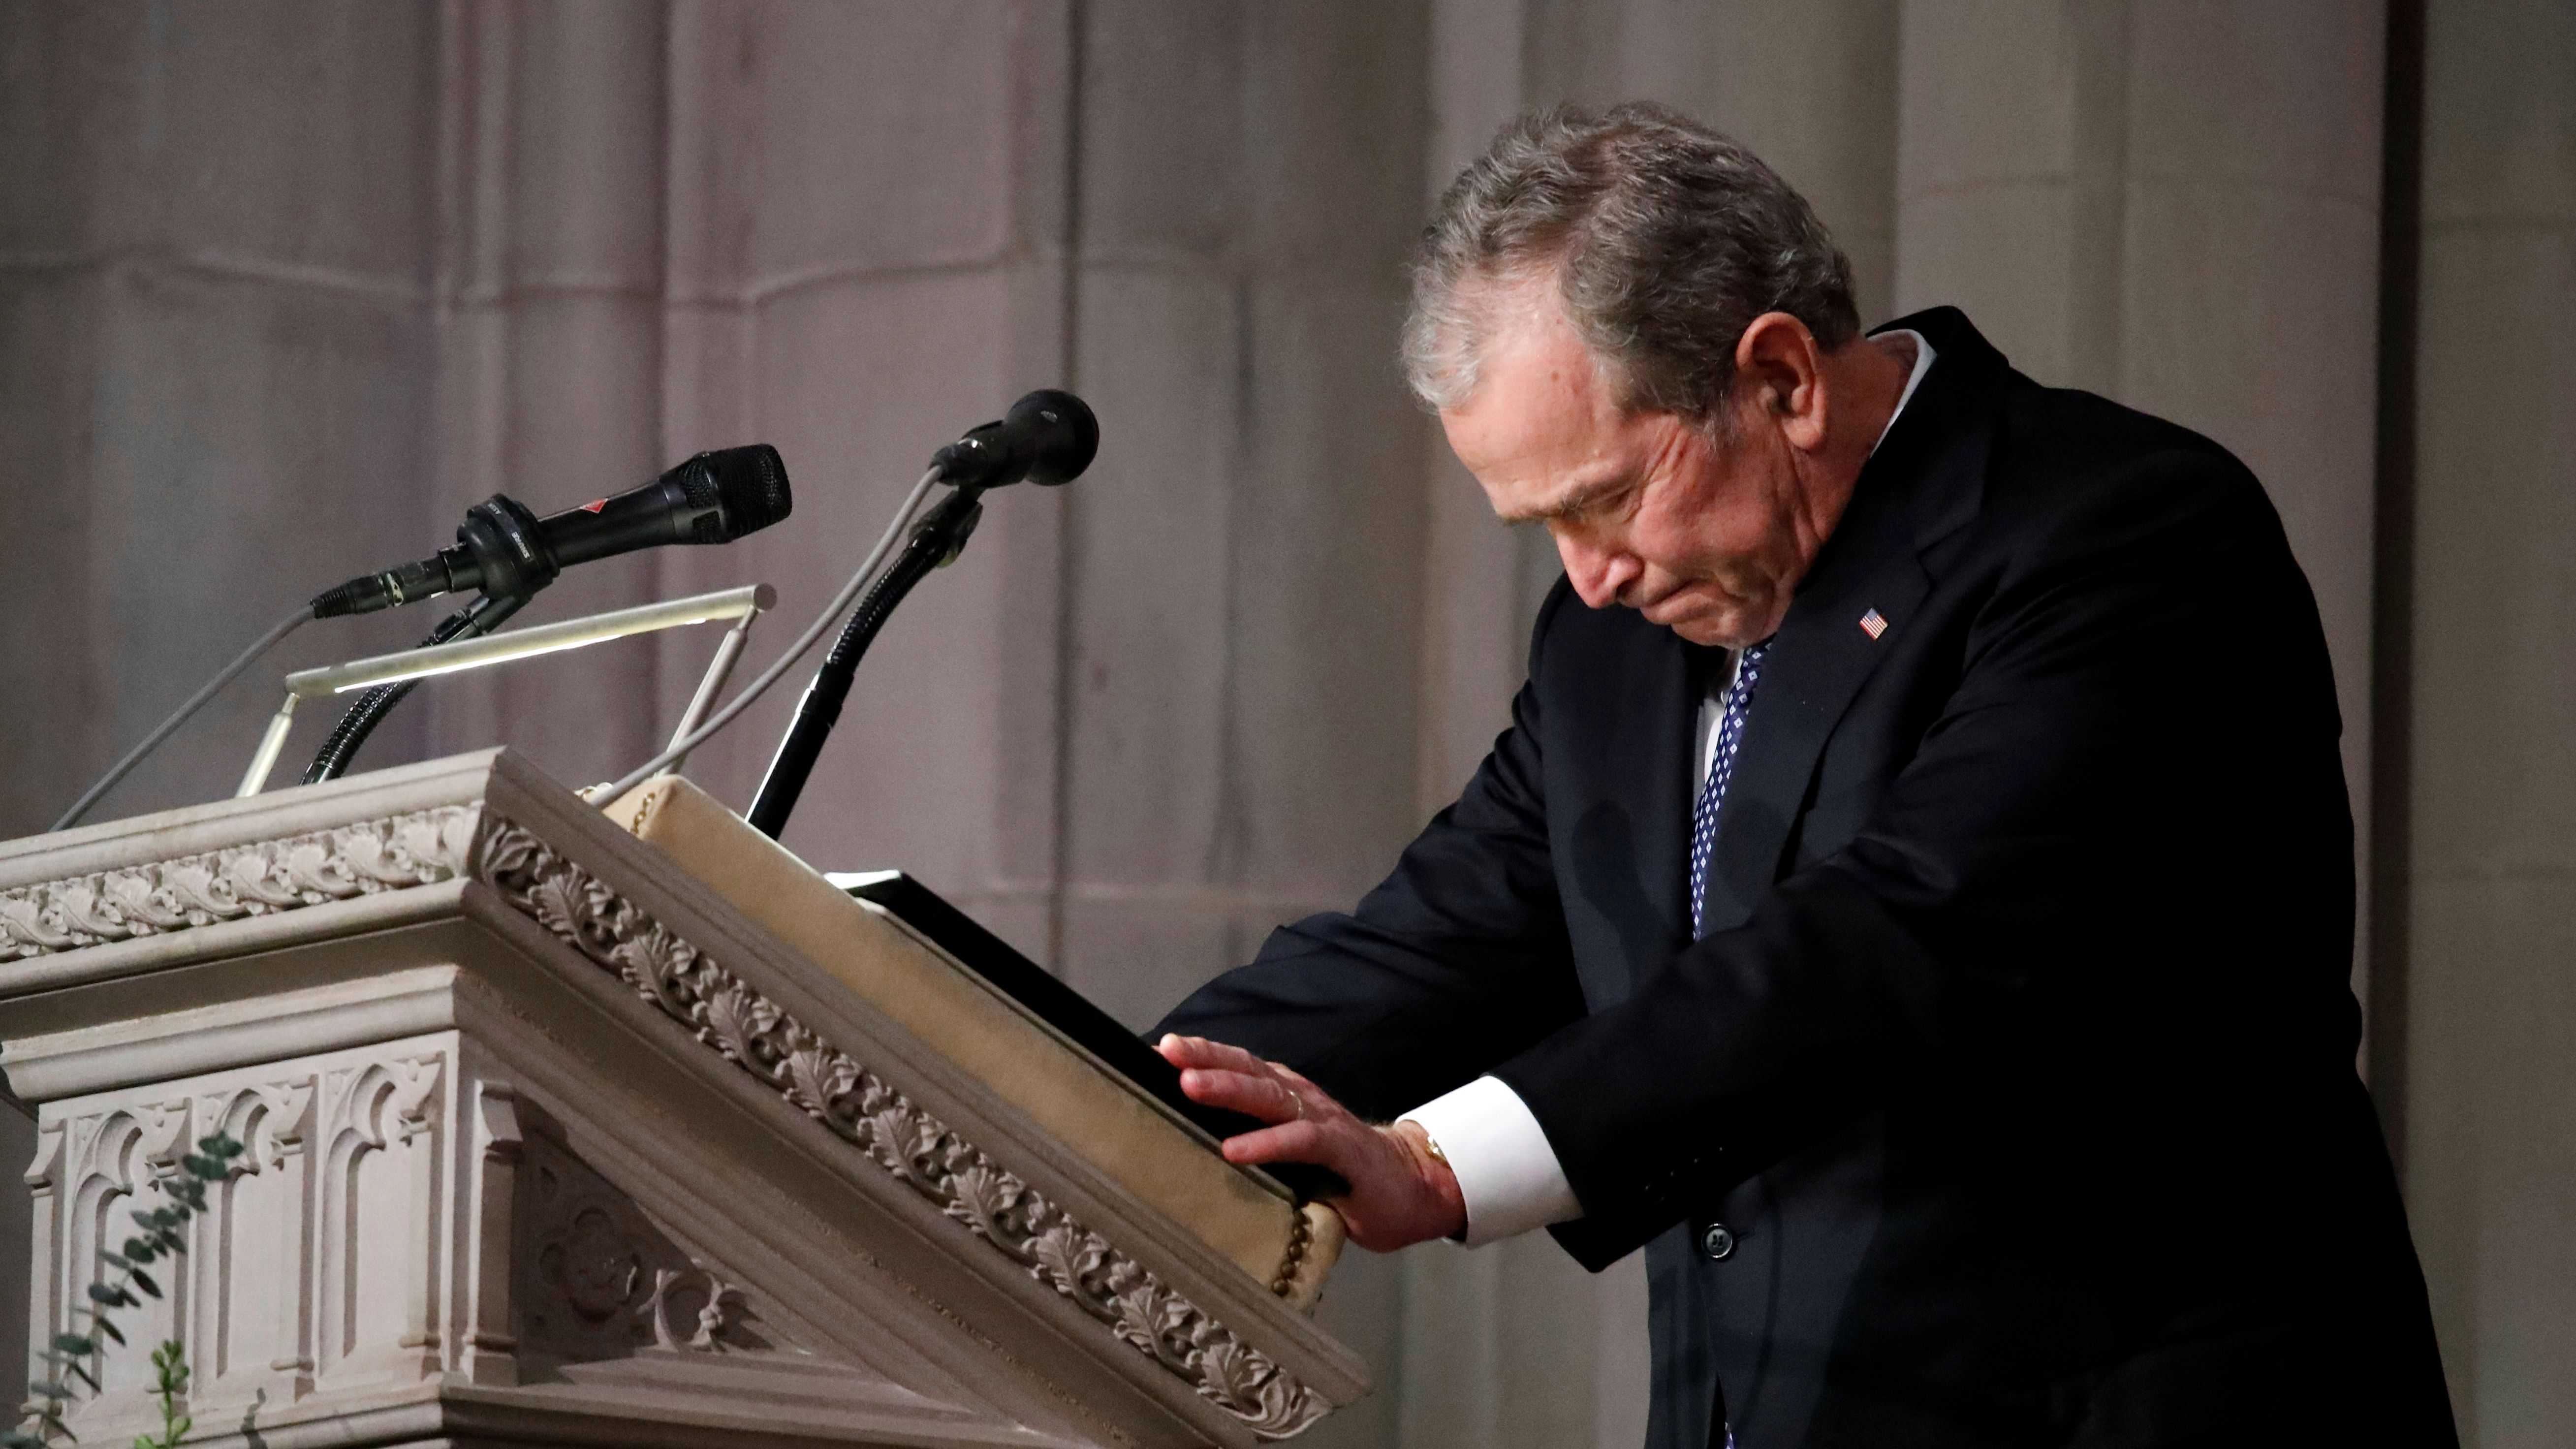 Former President George W. Bush speaks at the State Funeral for his father, former President George H.W. Bush, at the National Cathedral, Wednesday, Dec. 5, 2018, in Washington. Alex Brandon/Pool via REUTERS TPX IMAGES OF THE DAY - RC19A33A73A0